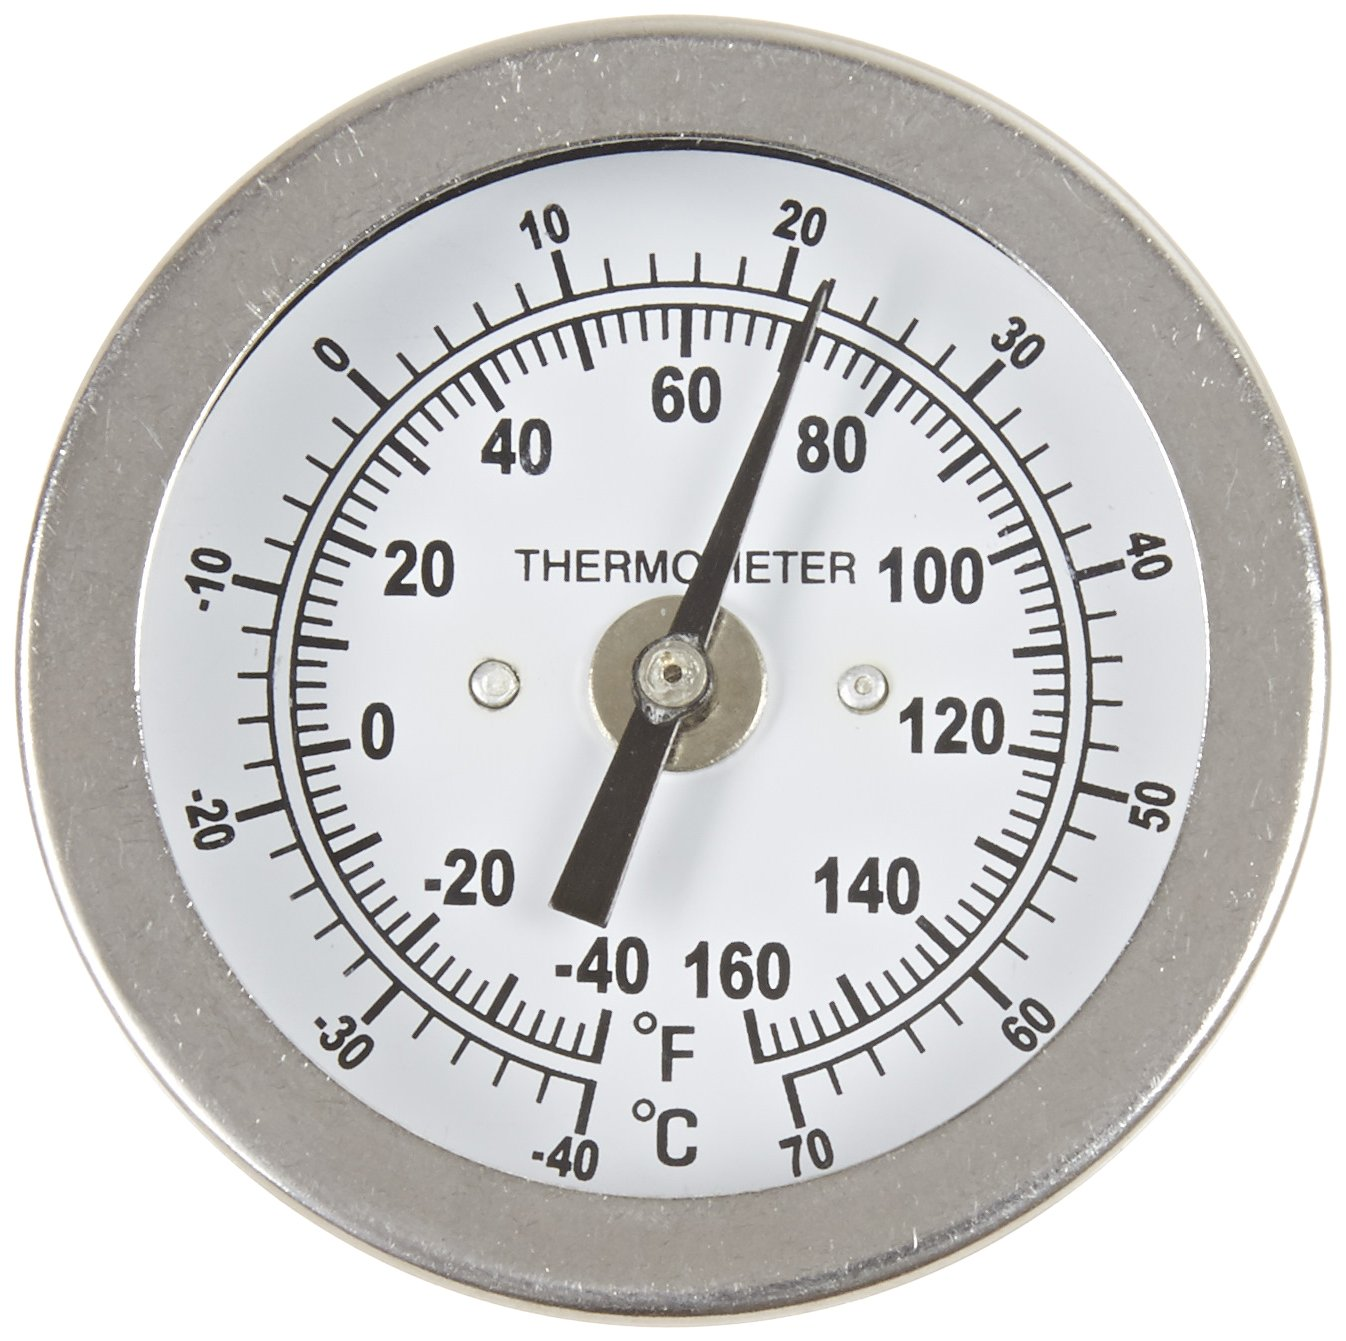 PIC Gauge B2B2-BB Stainless Steel Bimetal Thermometer with Recalibration Screw, 90 Back Angle Type, 2 Dial Size, 2-1/2 Stem Length, -40/160 F and -40/160 C Temperature Range by PIC Gauges B00FBPDLIM